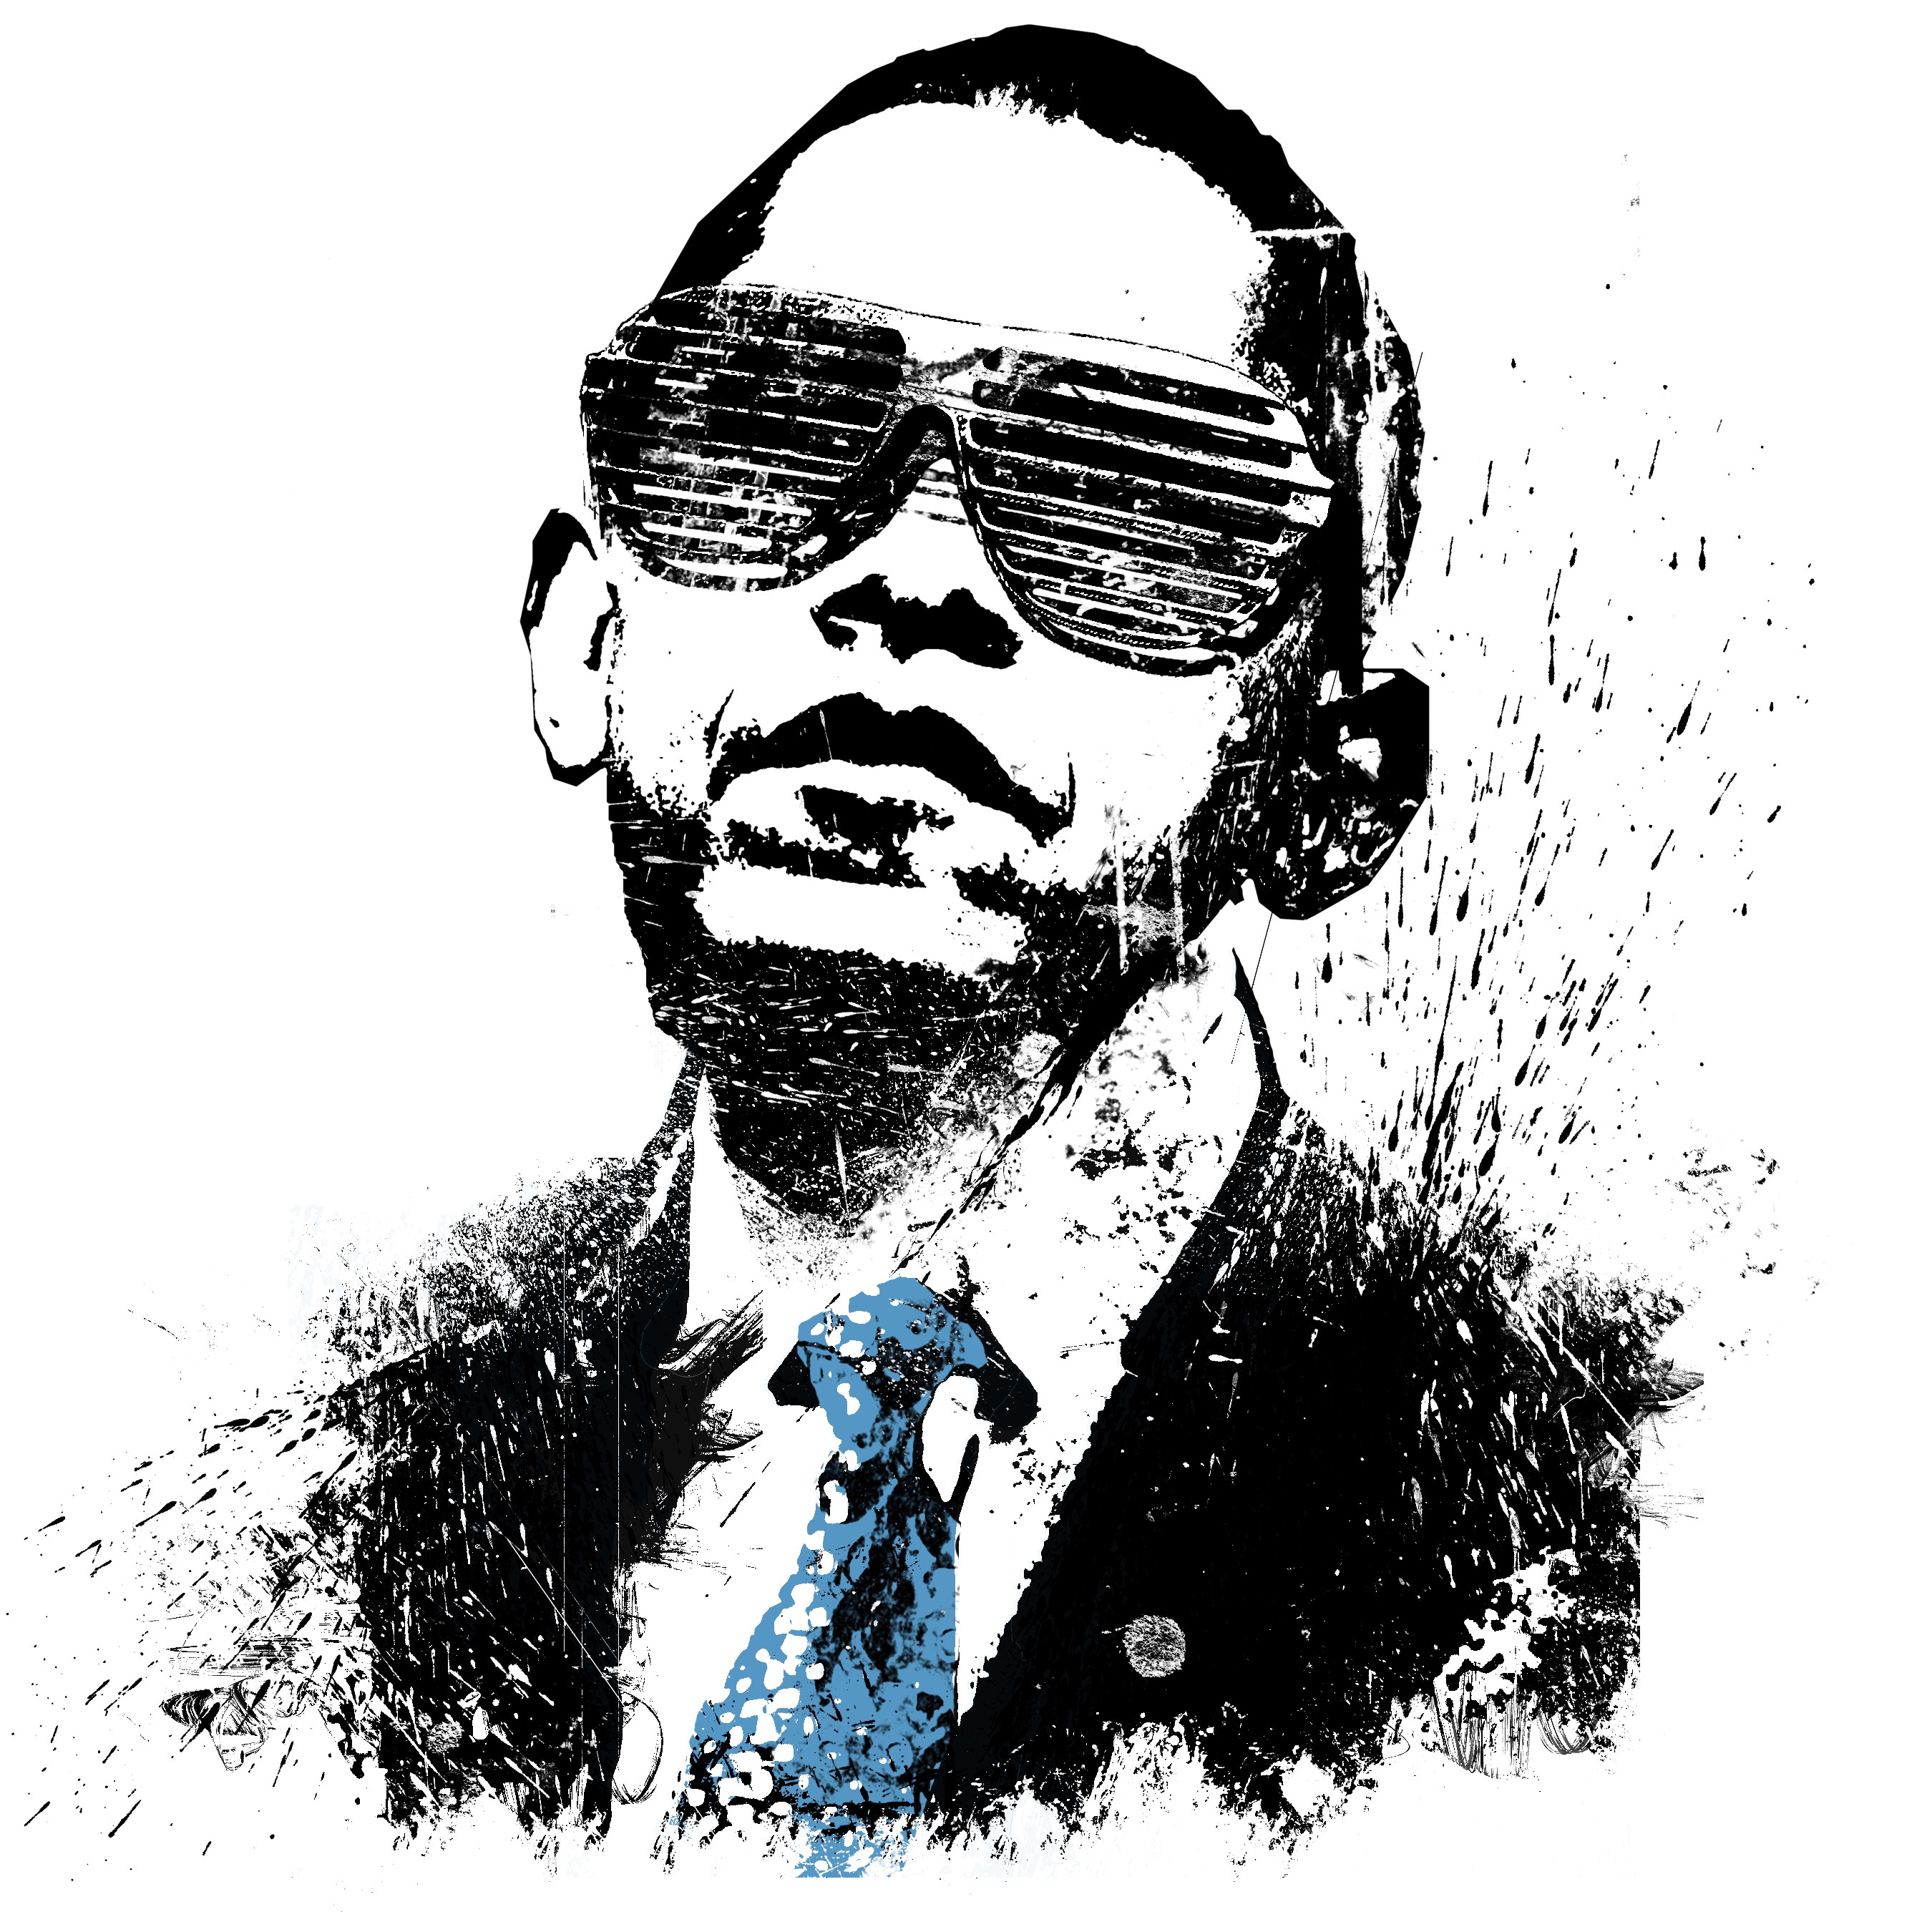 Obama T Shirt Design By Cfong On Deviantart